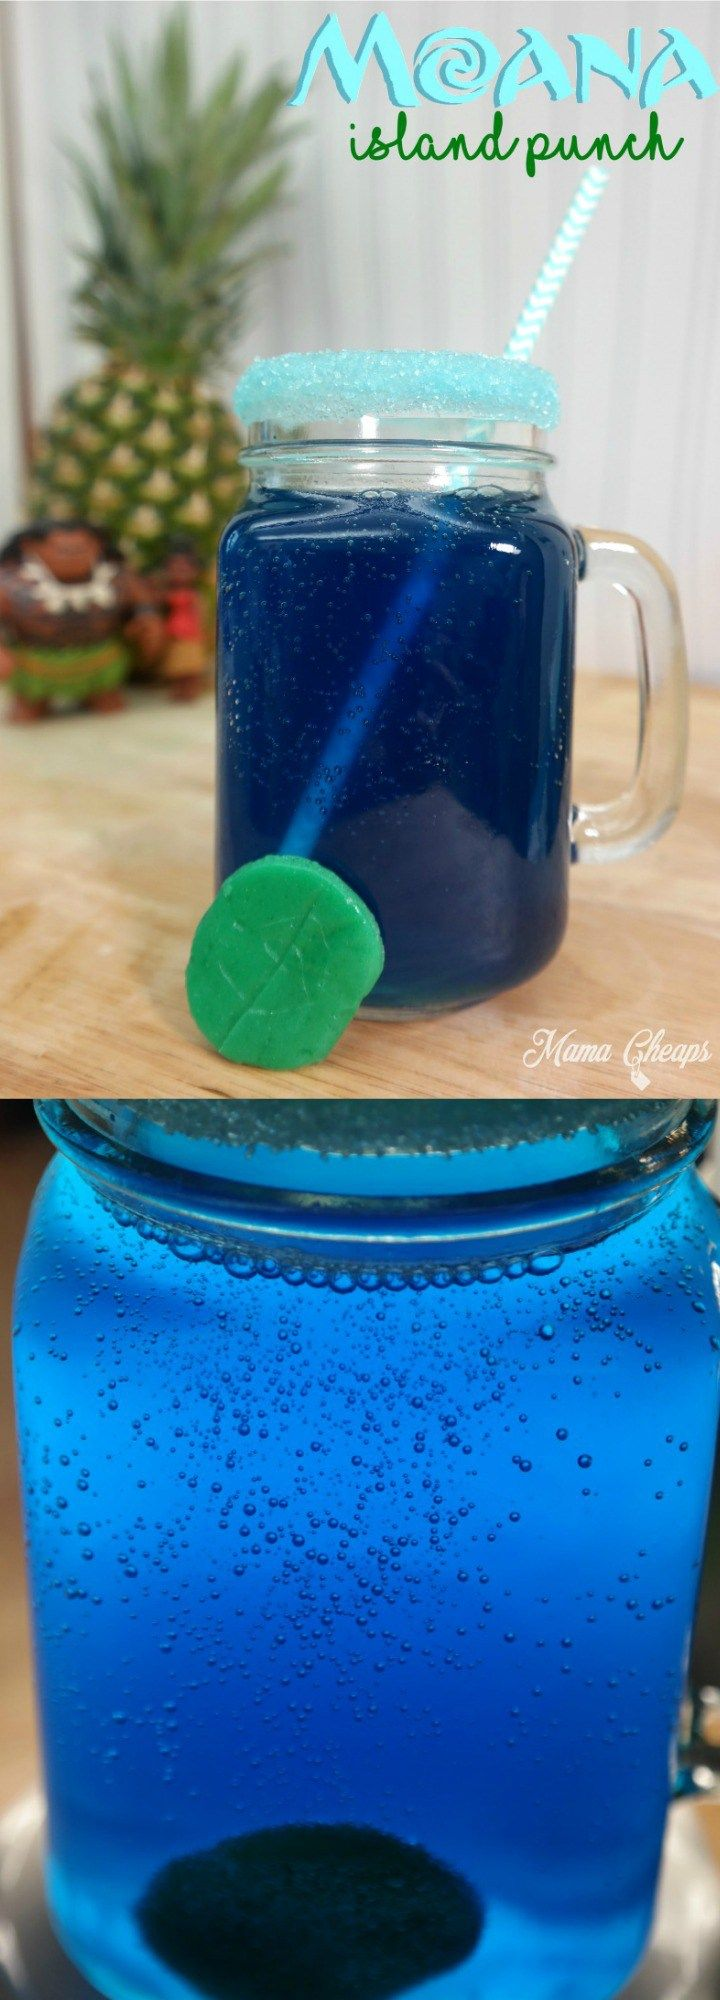 Moana Inspired Island Punch Party Drink - perfect for a Moana party!!